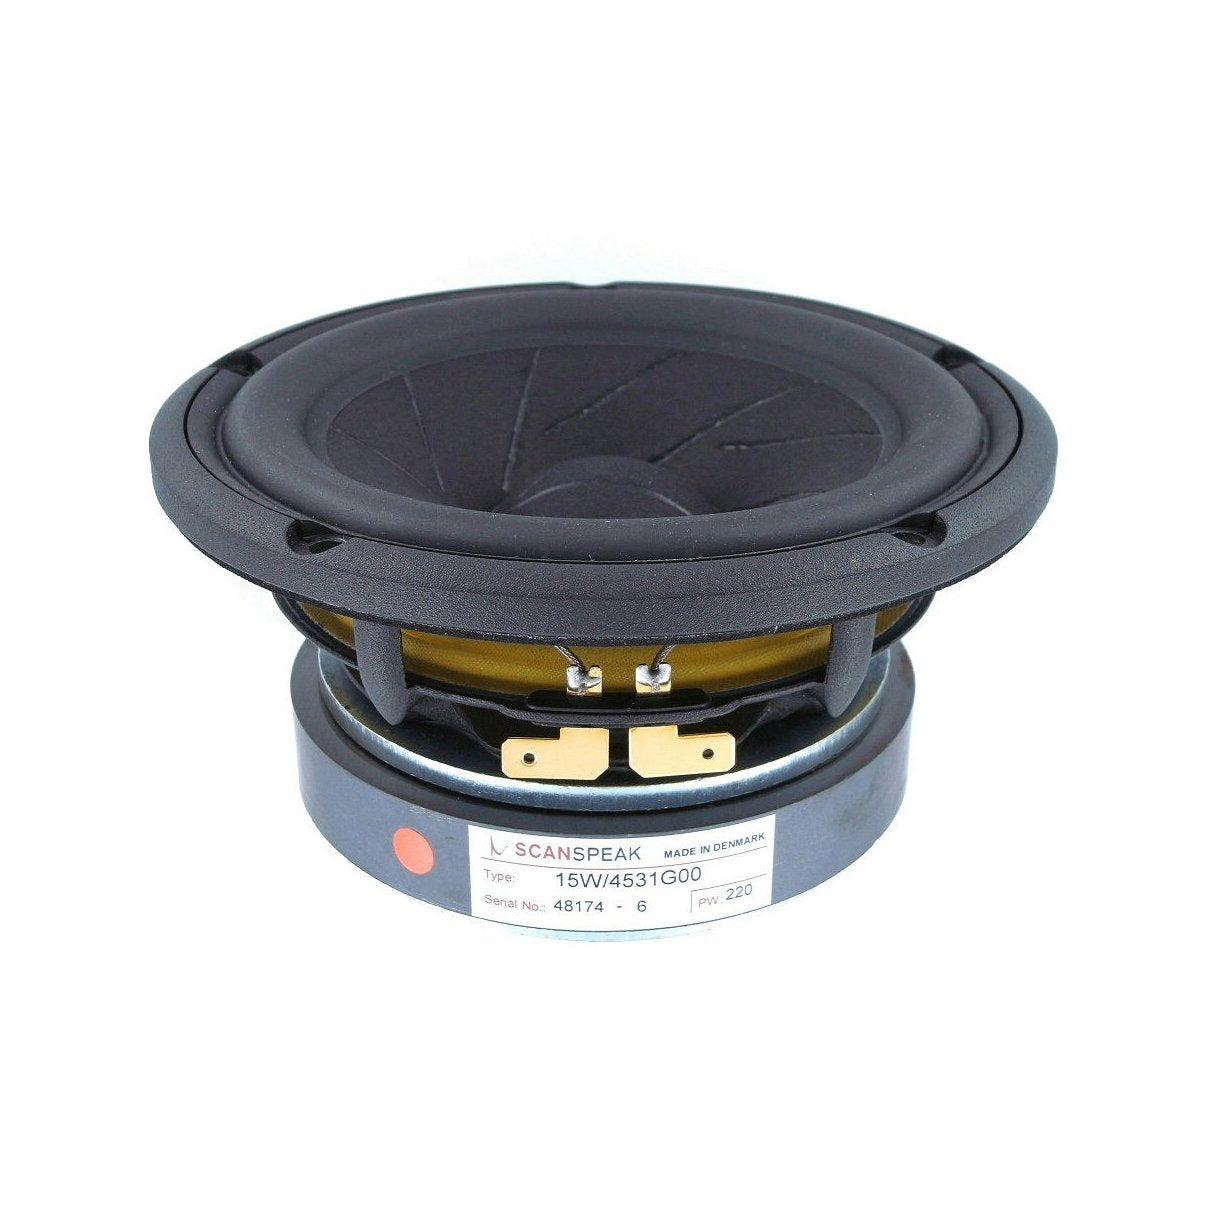 Scanspeak Revelator 15W/4531G00 Midwoofer - Willys-Hifi Ltd